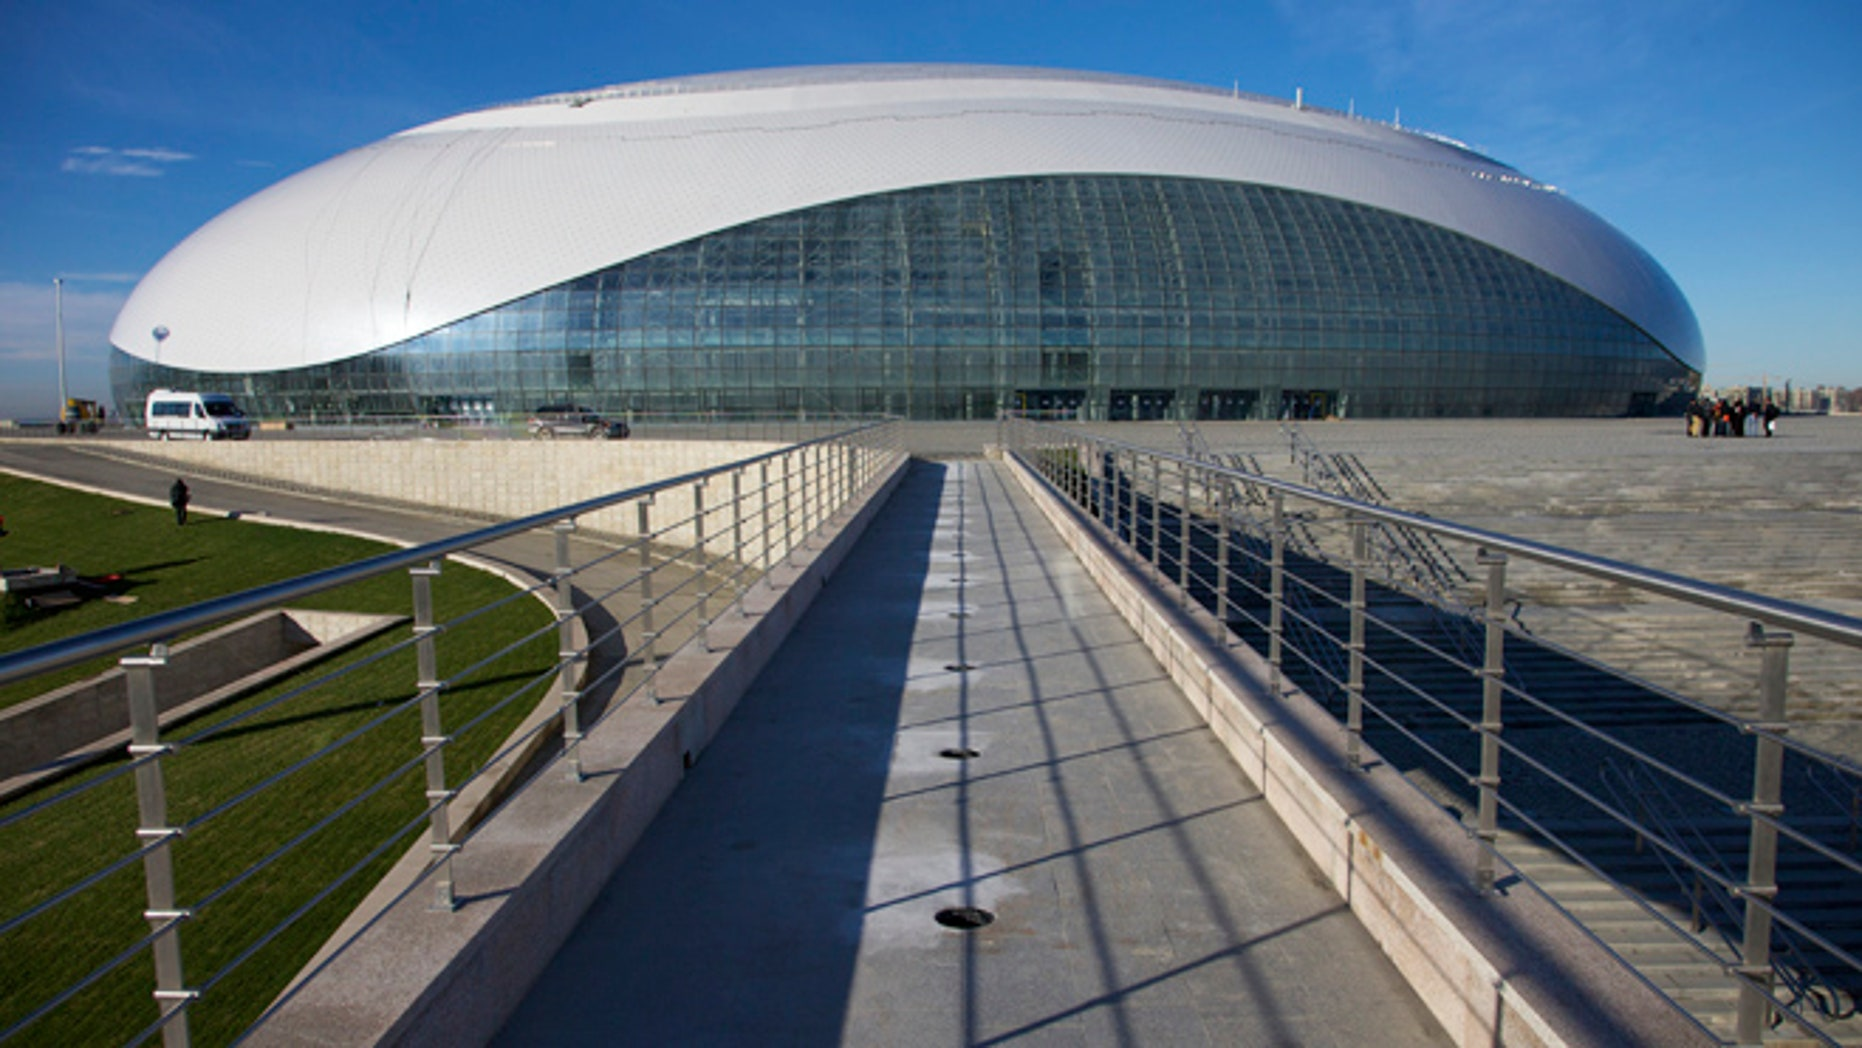 Dec. 9, 2012: This file photo, shows an exterior view of the Bolshoi ice dome, the main ice hockey arena, at the Black Sea resort of Sochi, Russia.